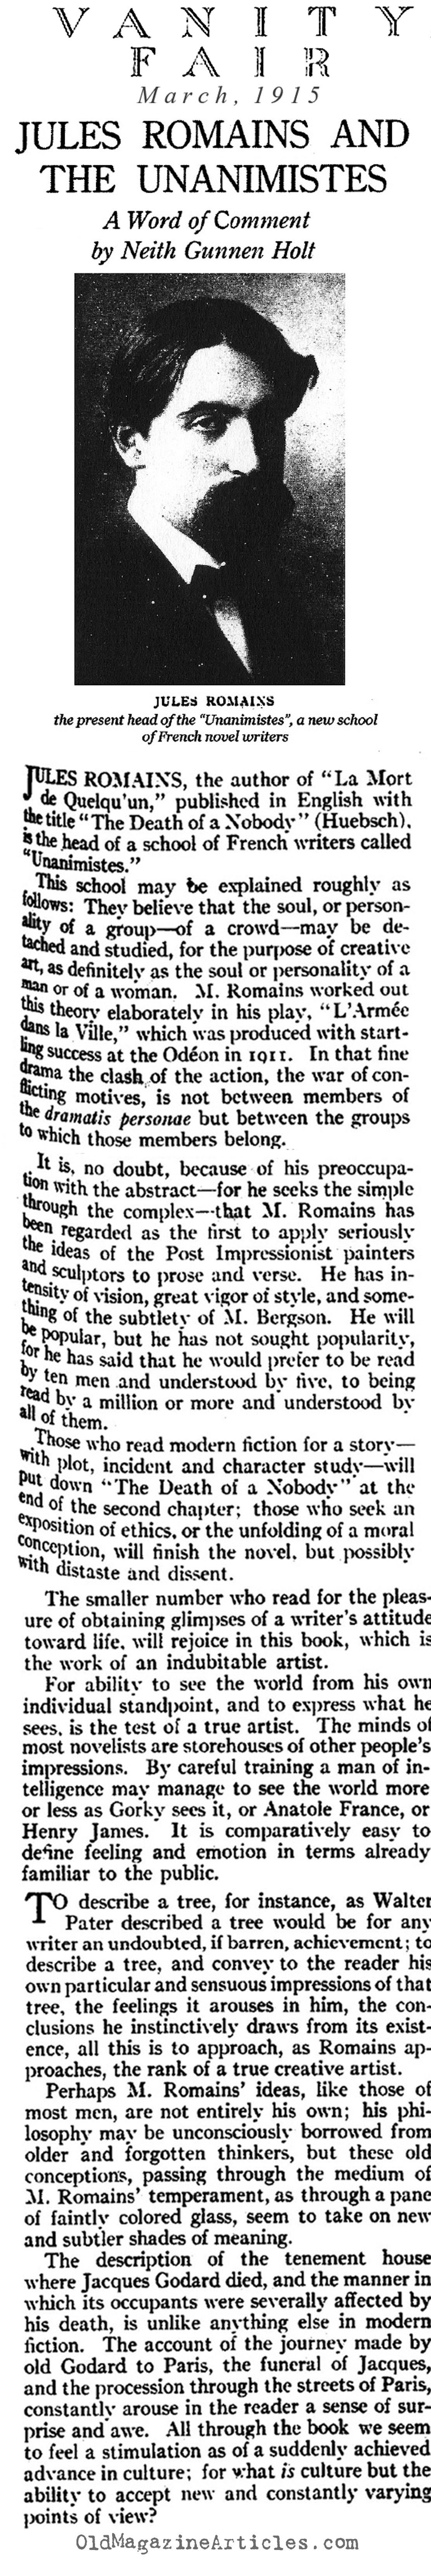 Jules Romains and THE DEATH OF NOBODY  (Vanity Fair, 1915)